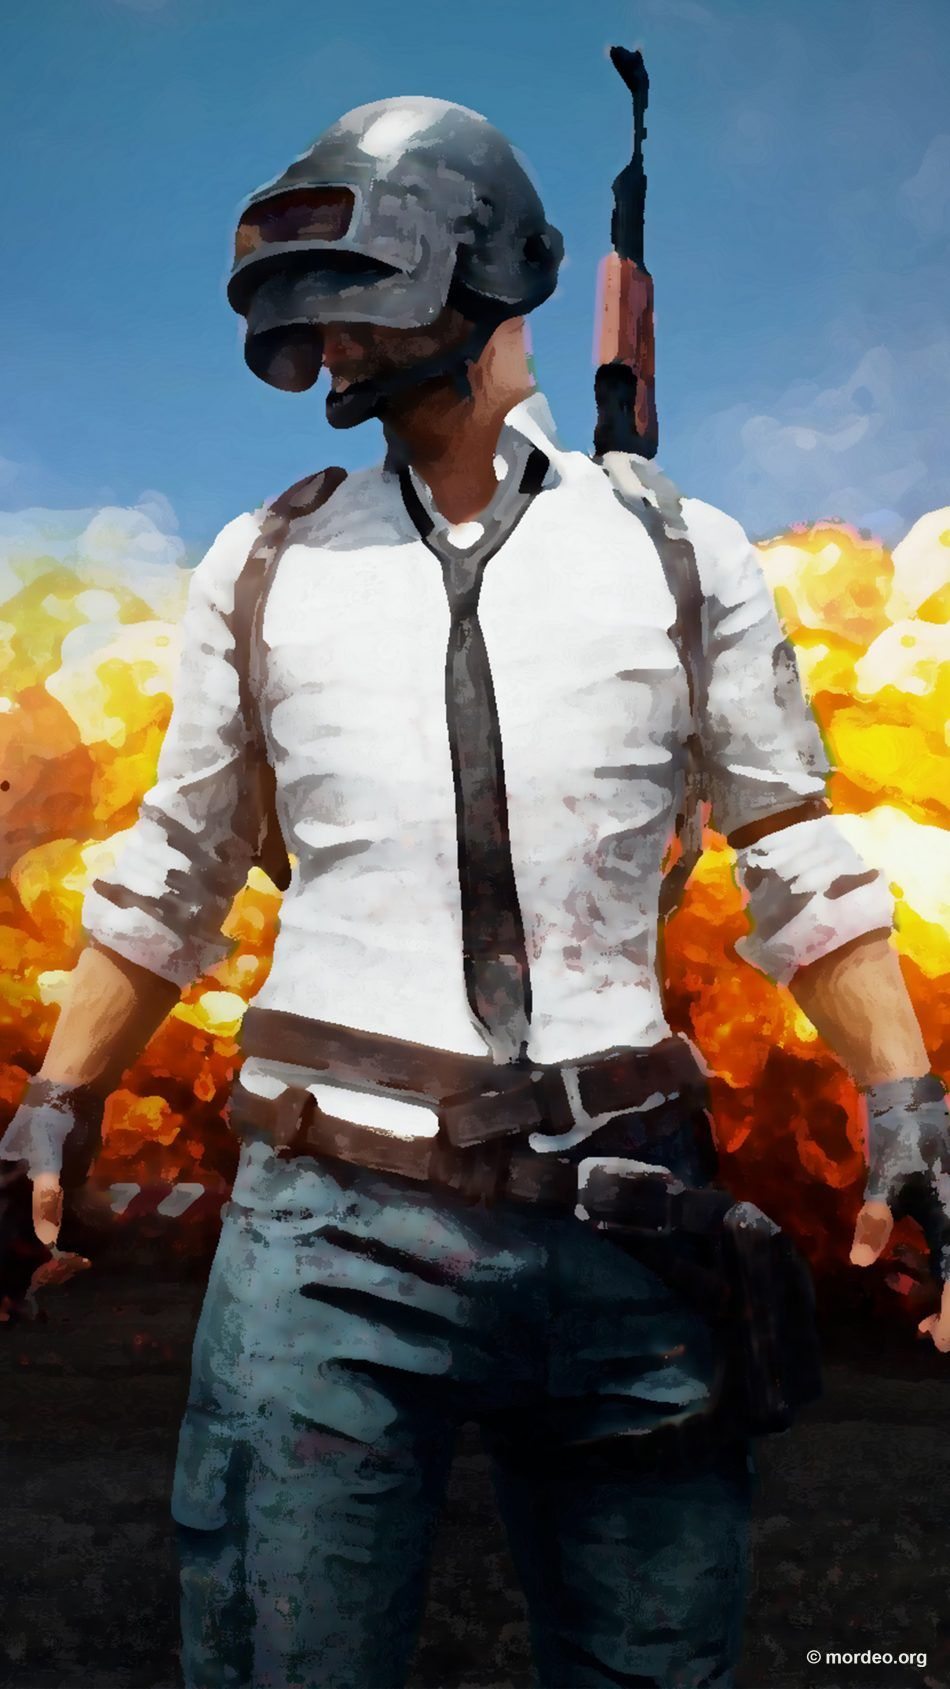 PUBG Prisma Artwork PlayerUnknown's Battlegrounds Free 4K